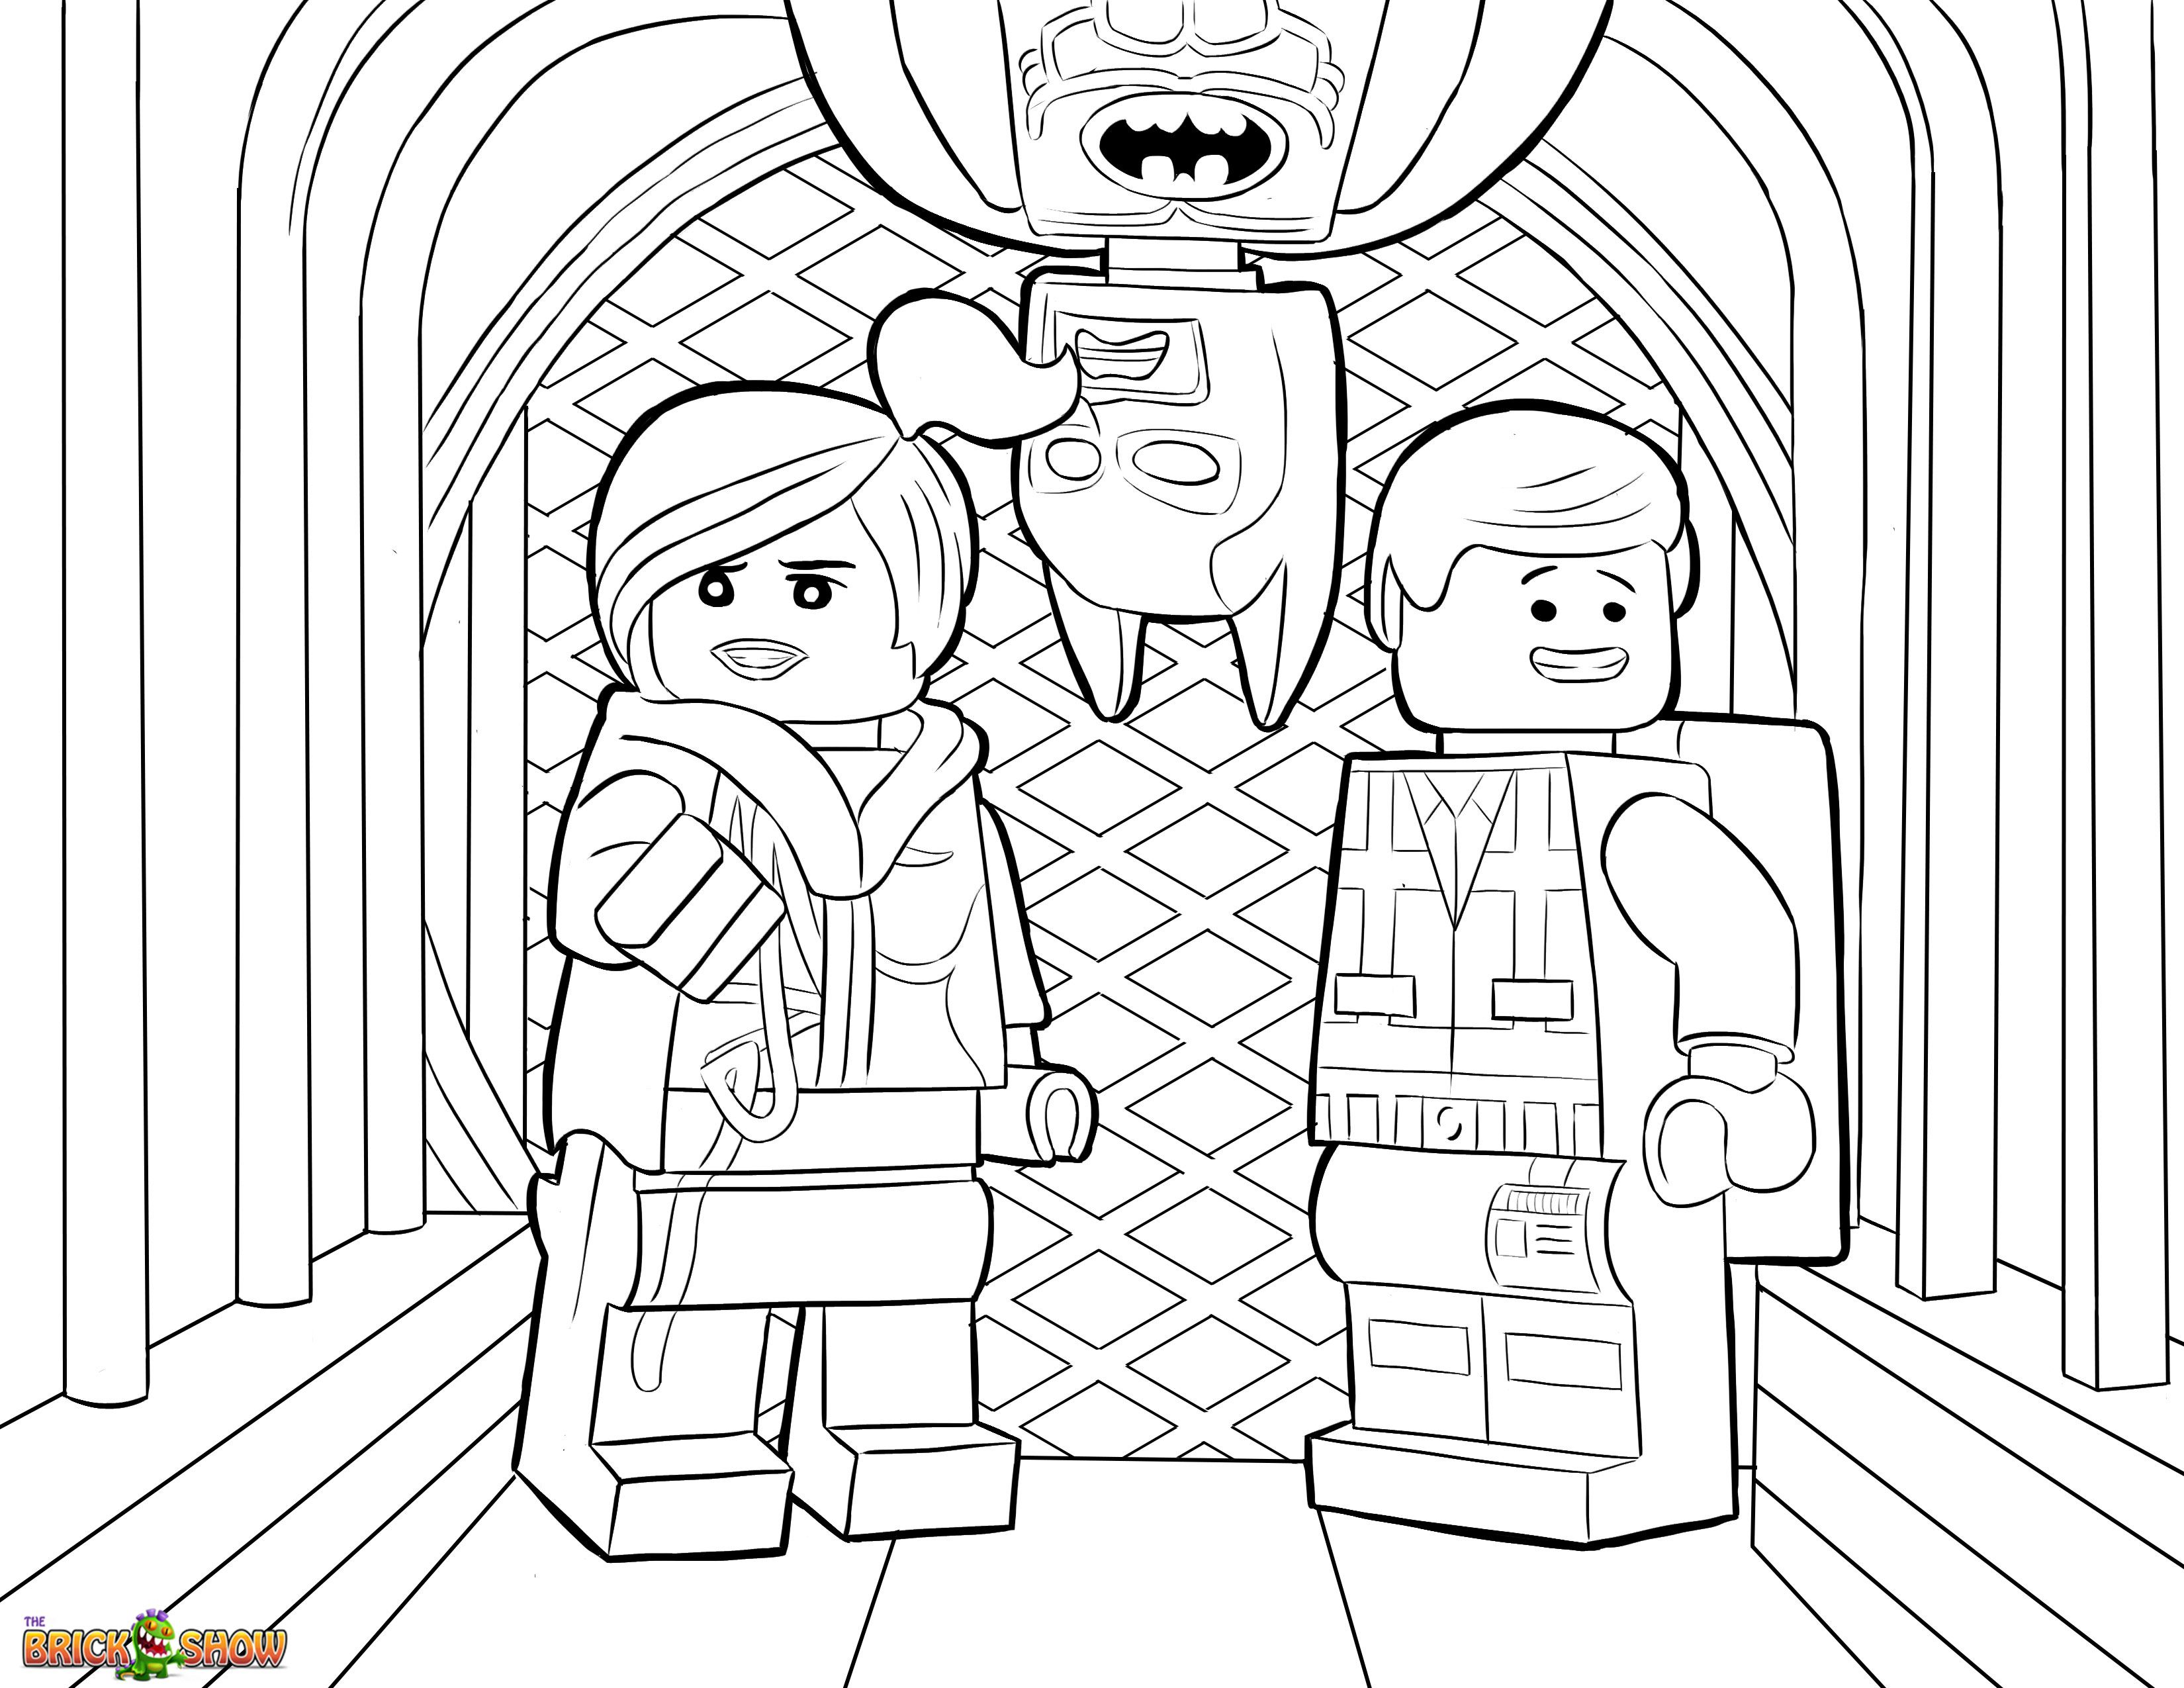 Riolu pokemon desenhos imprimir colorir pintar coloring pages18 - Images Of Lego Batman Coloring Pages To Print Worksheet And Coloring